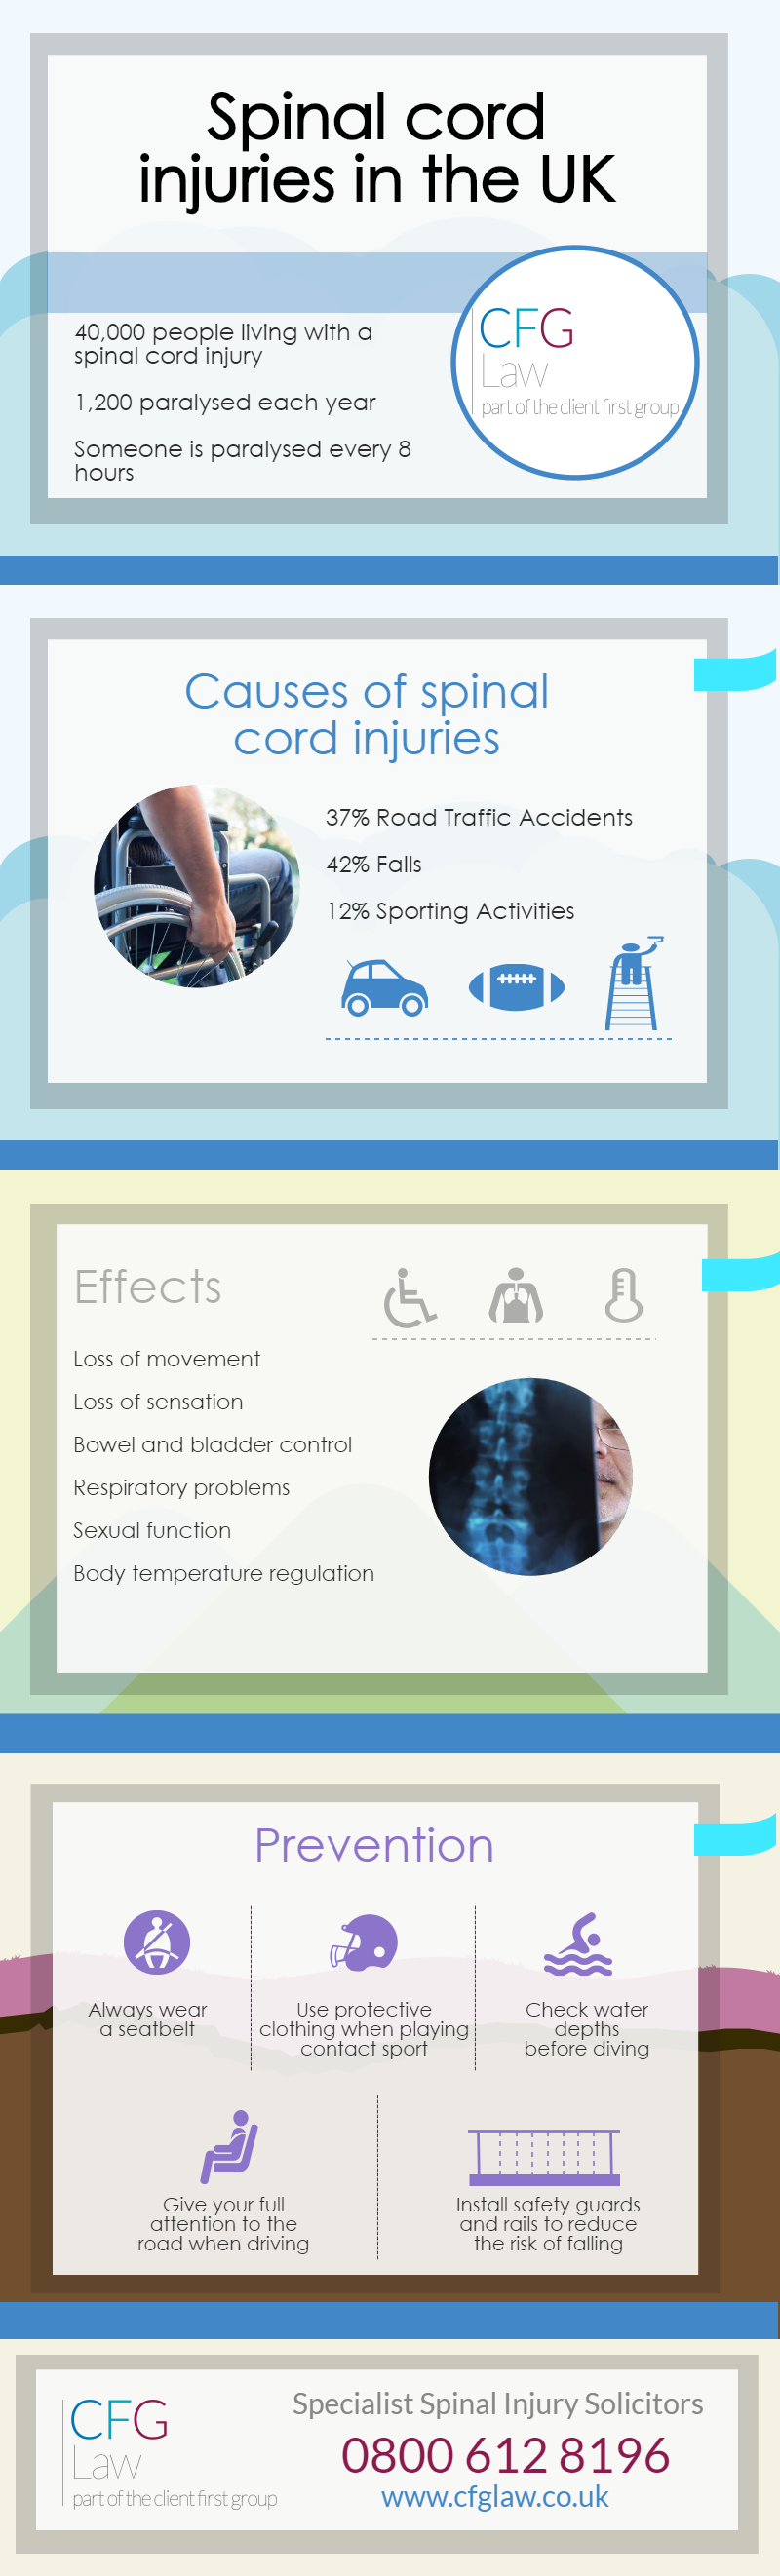 Infographic: Spinal cord injuries in the UK